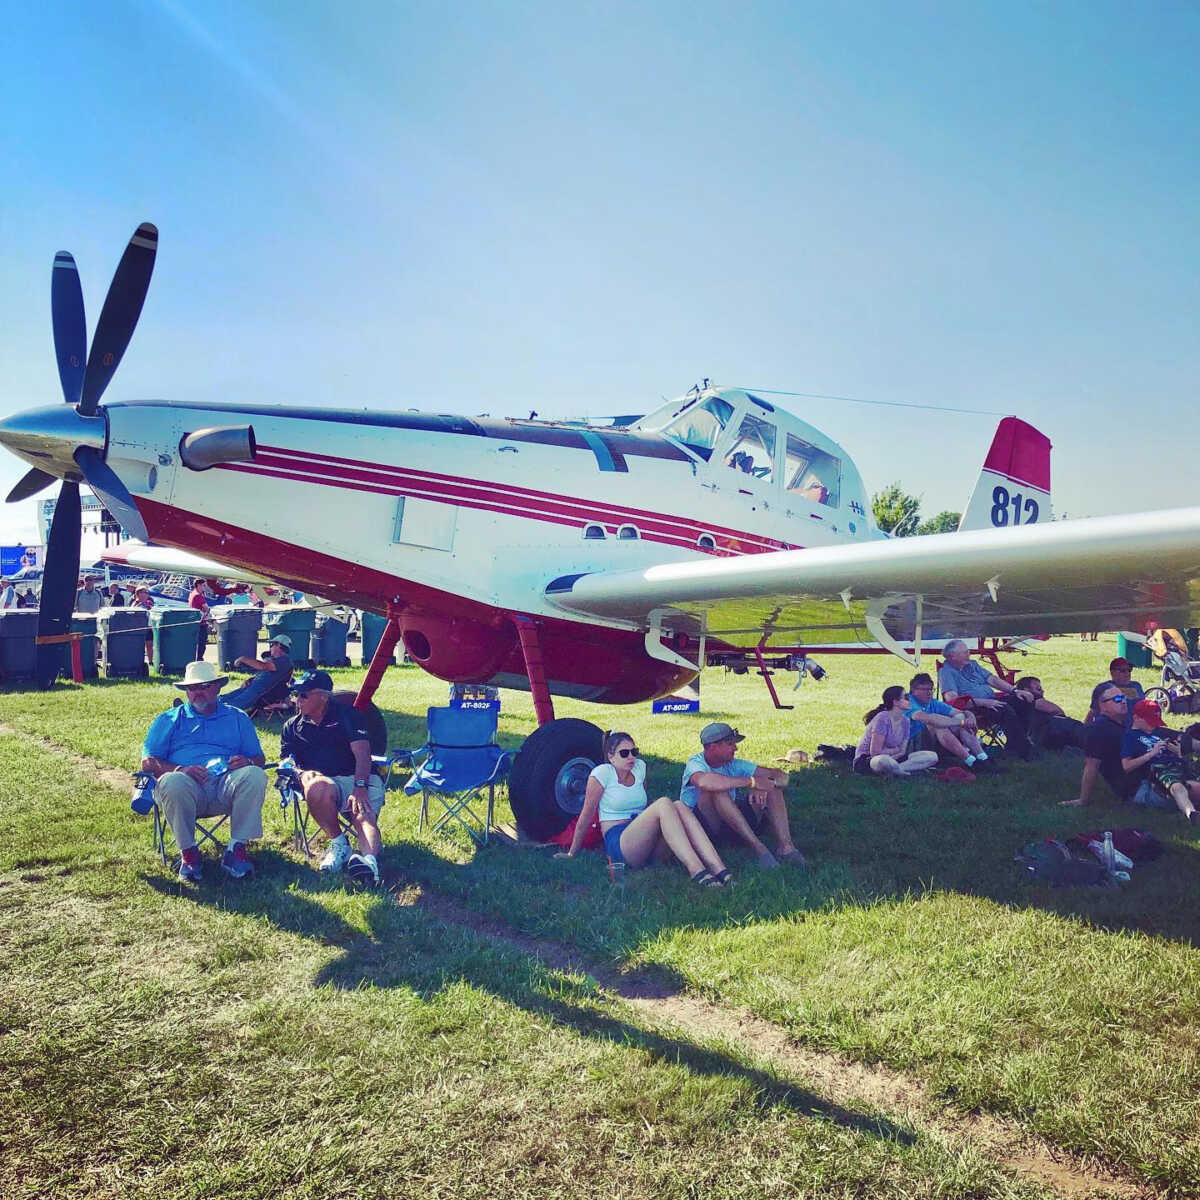 Air Tractor Airplanes at EAA AirVenture Oshkosh 2019